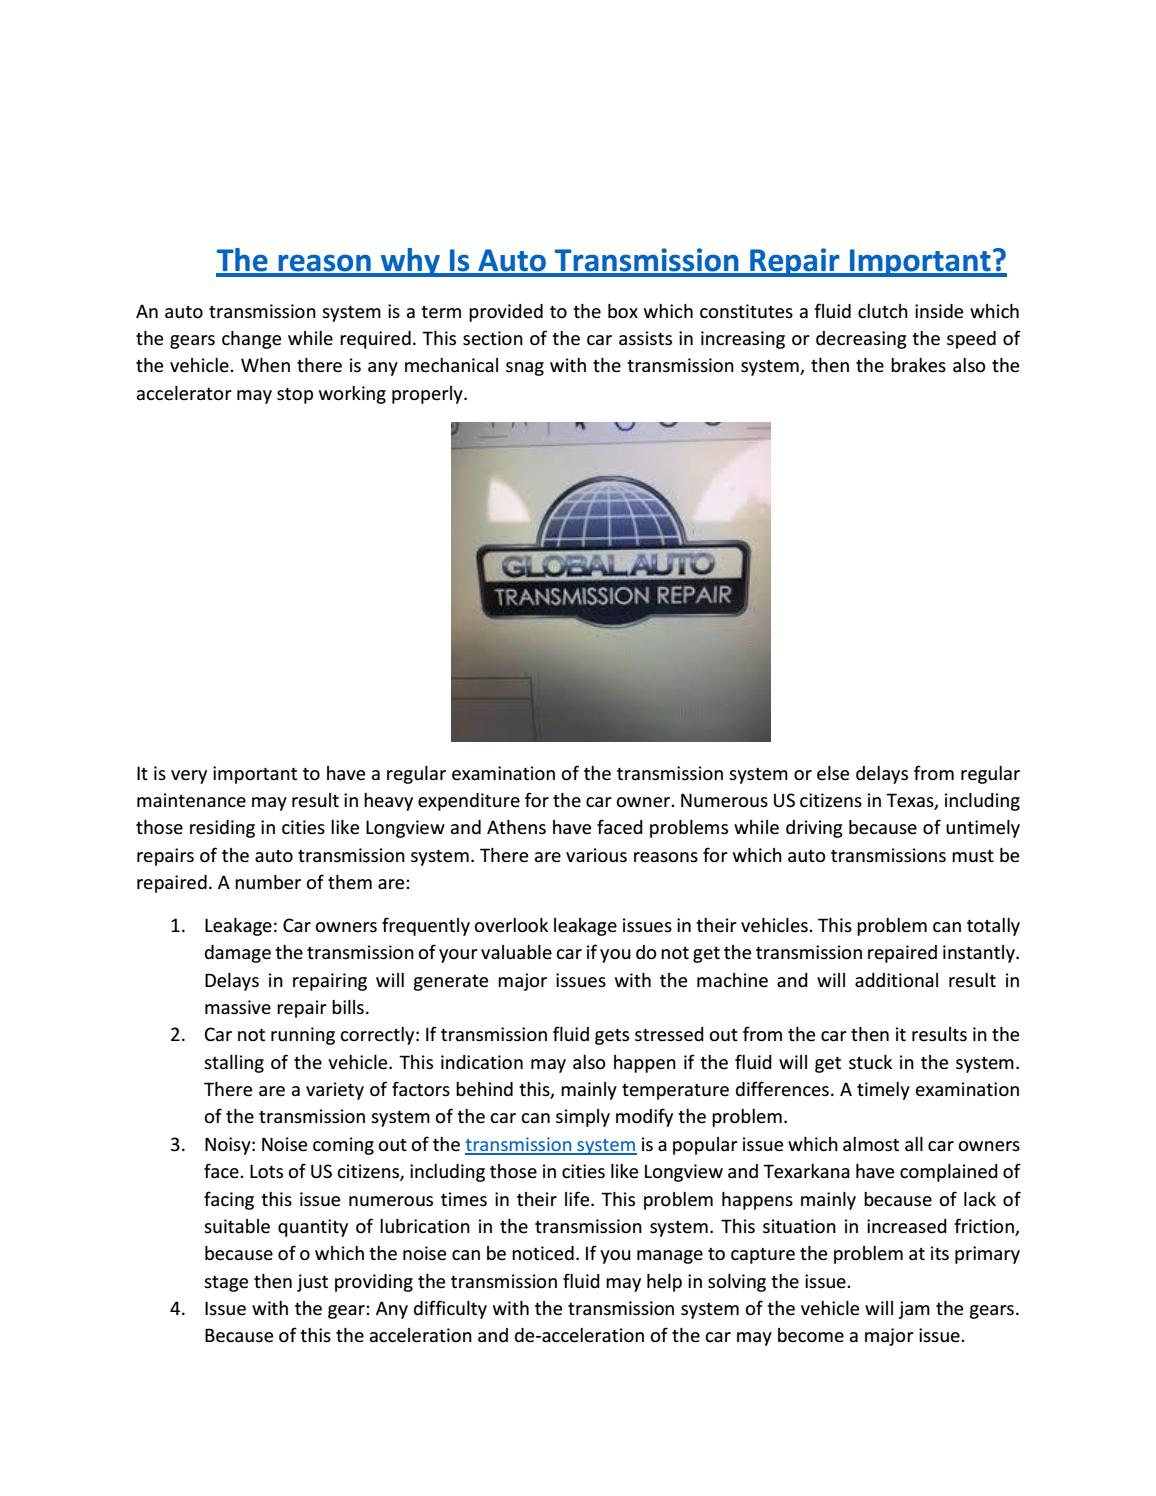 Auto Transmission Repair >> The Reason Why Is Auto Transmission Repair Important By